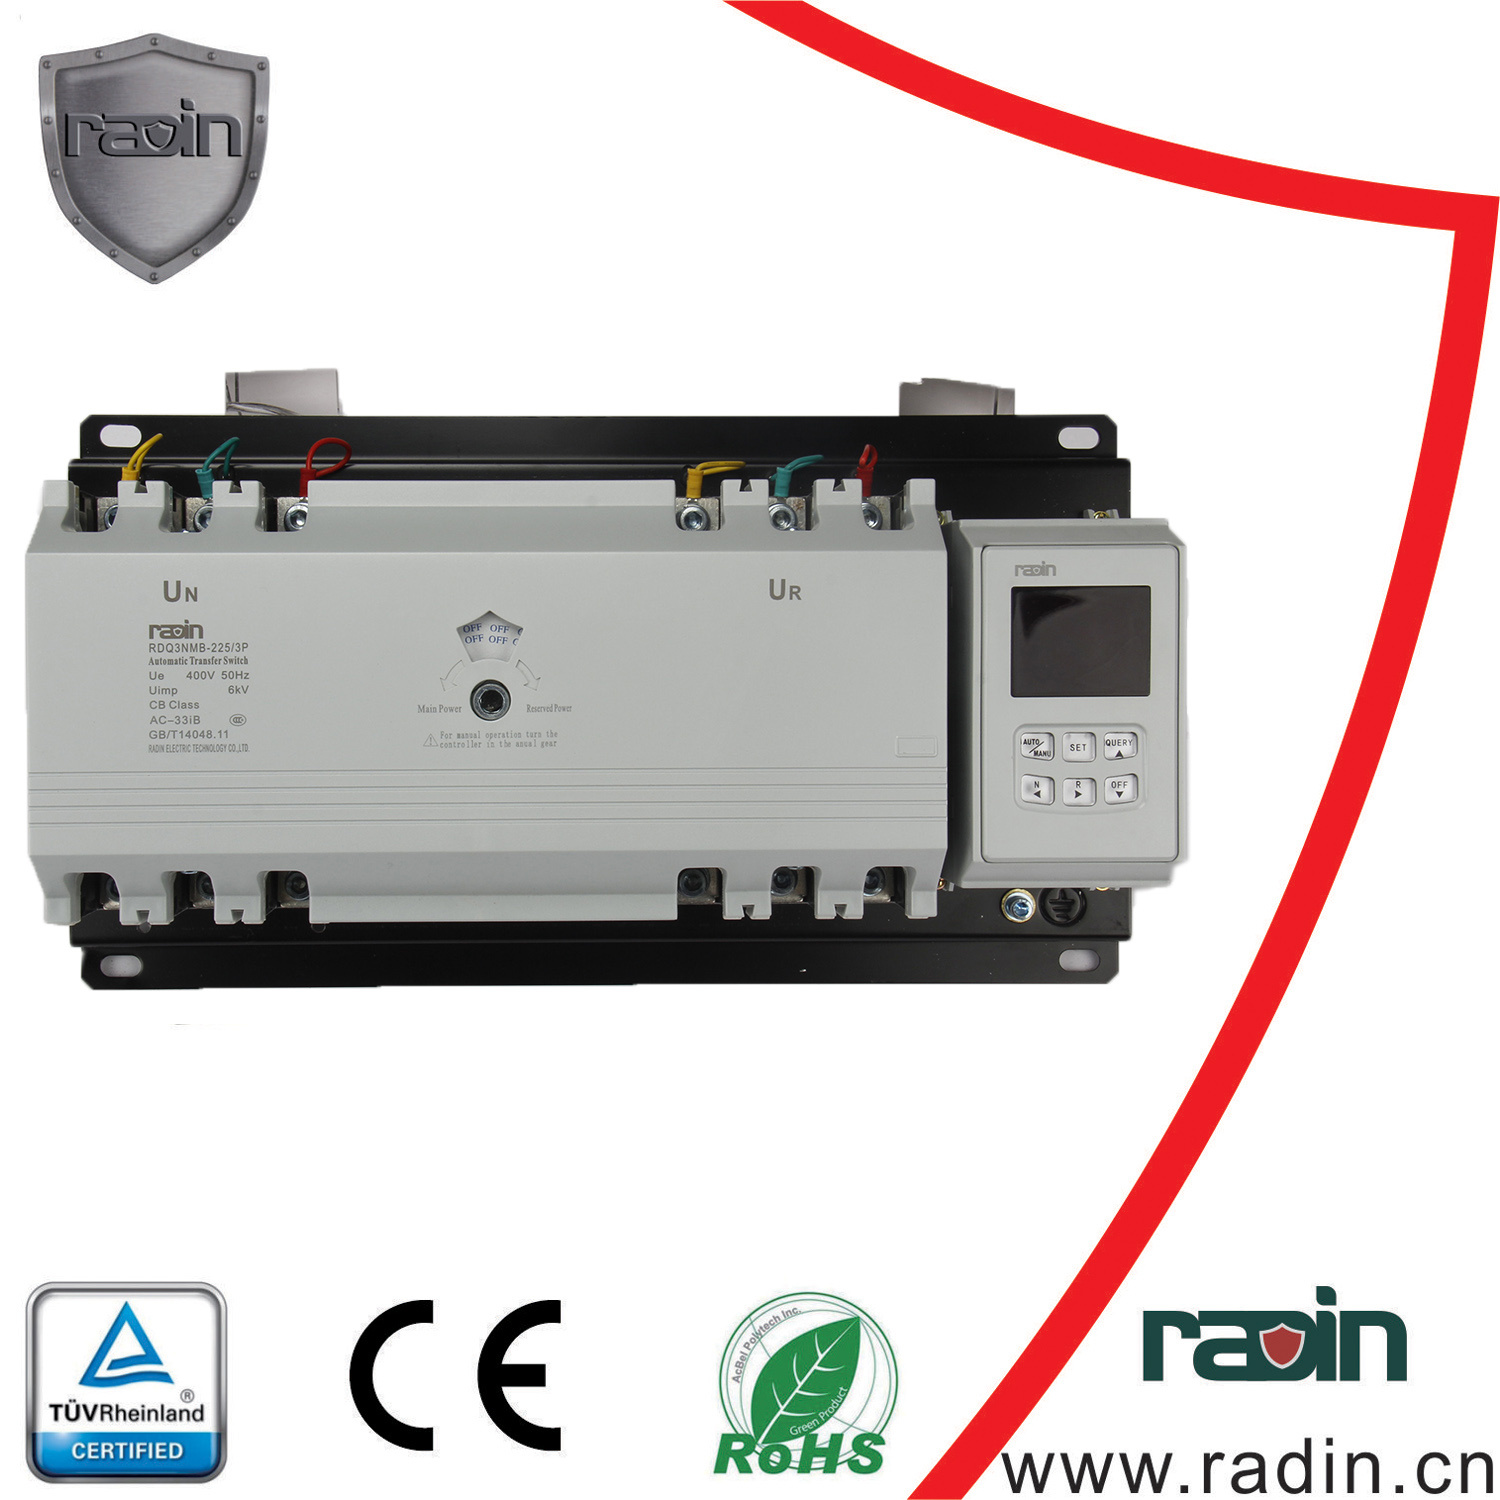 China Rdq3nmb 225 Double Power Automatic Transfer Switch Ats Dz47 100a Miniature Circuit Breaker Electronic And Digital Single Phase